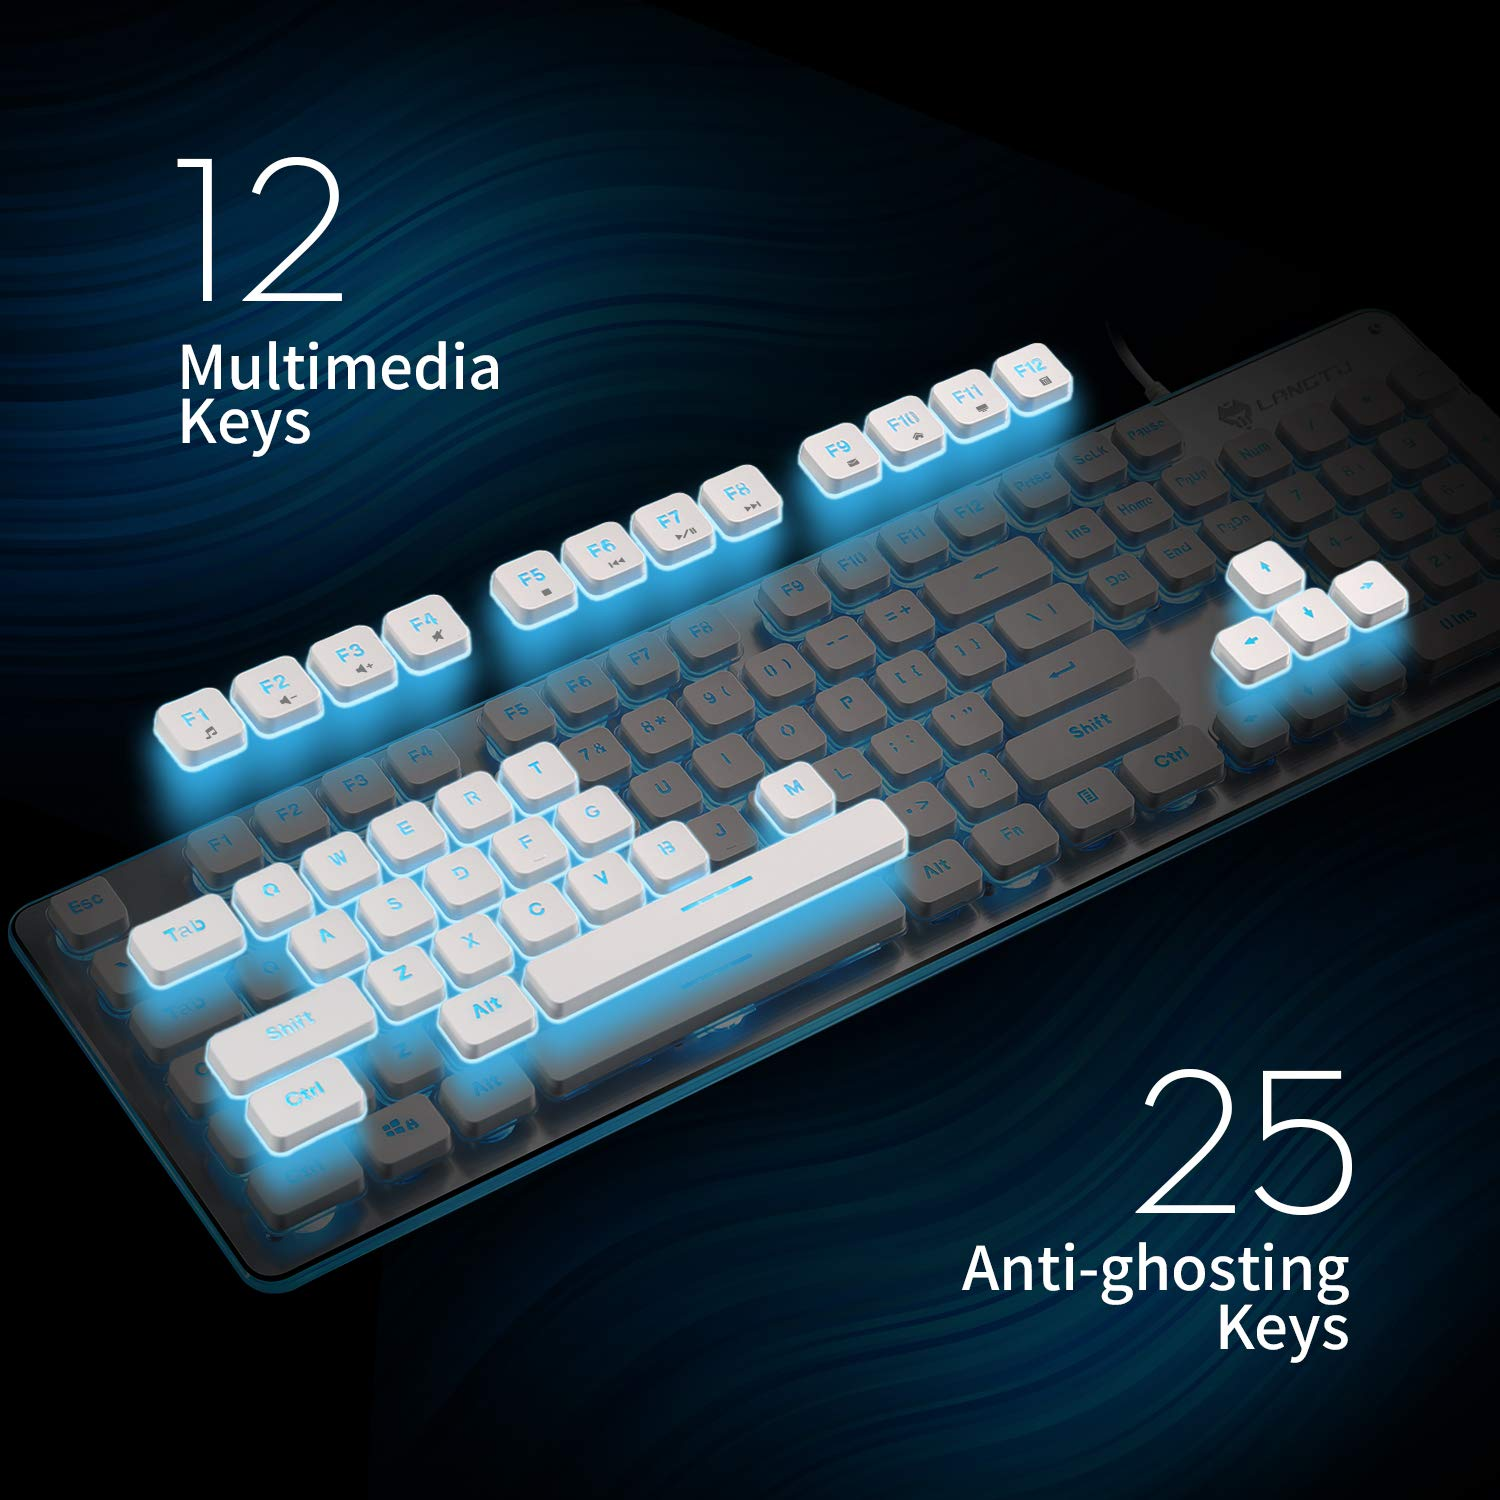 USB Wired All-Metal Panel 25 Keys Anti-ghosting Computer Keyboard 104 Keys PIPA Membrane Gaming Keyboard L1 White//Silver Rainbow LED Backlit Quiet Keyboard for Office